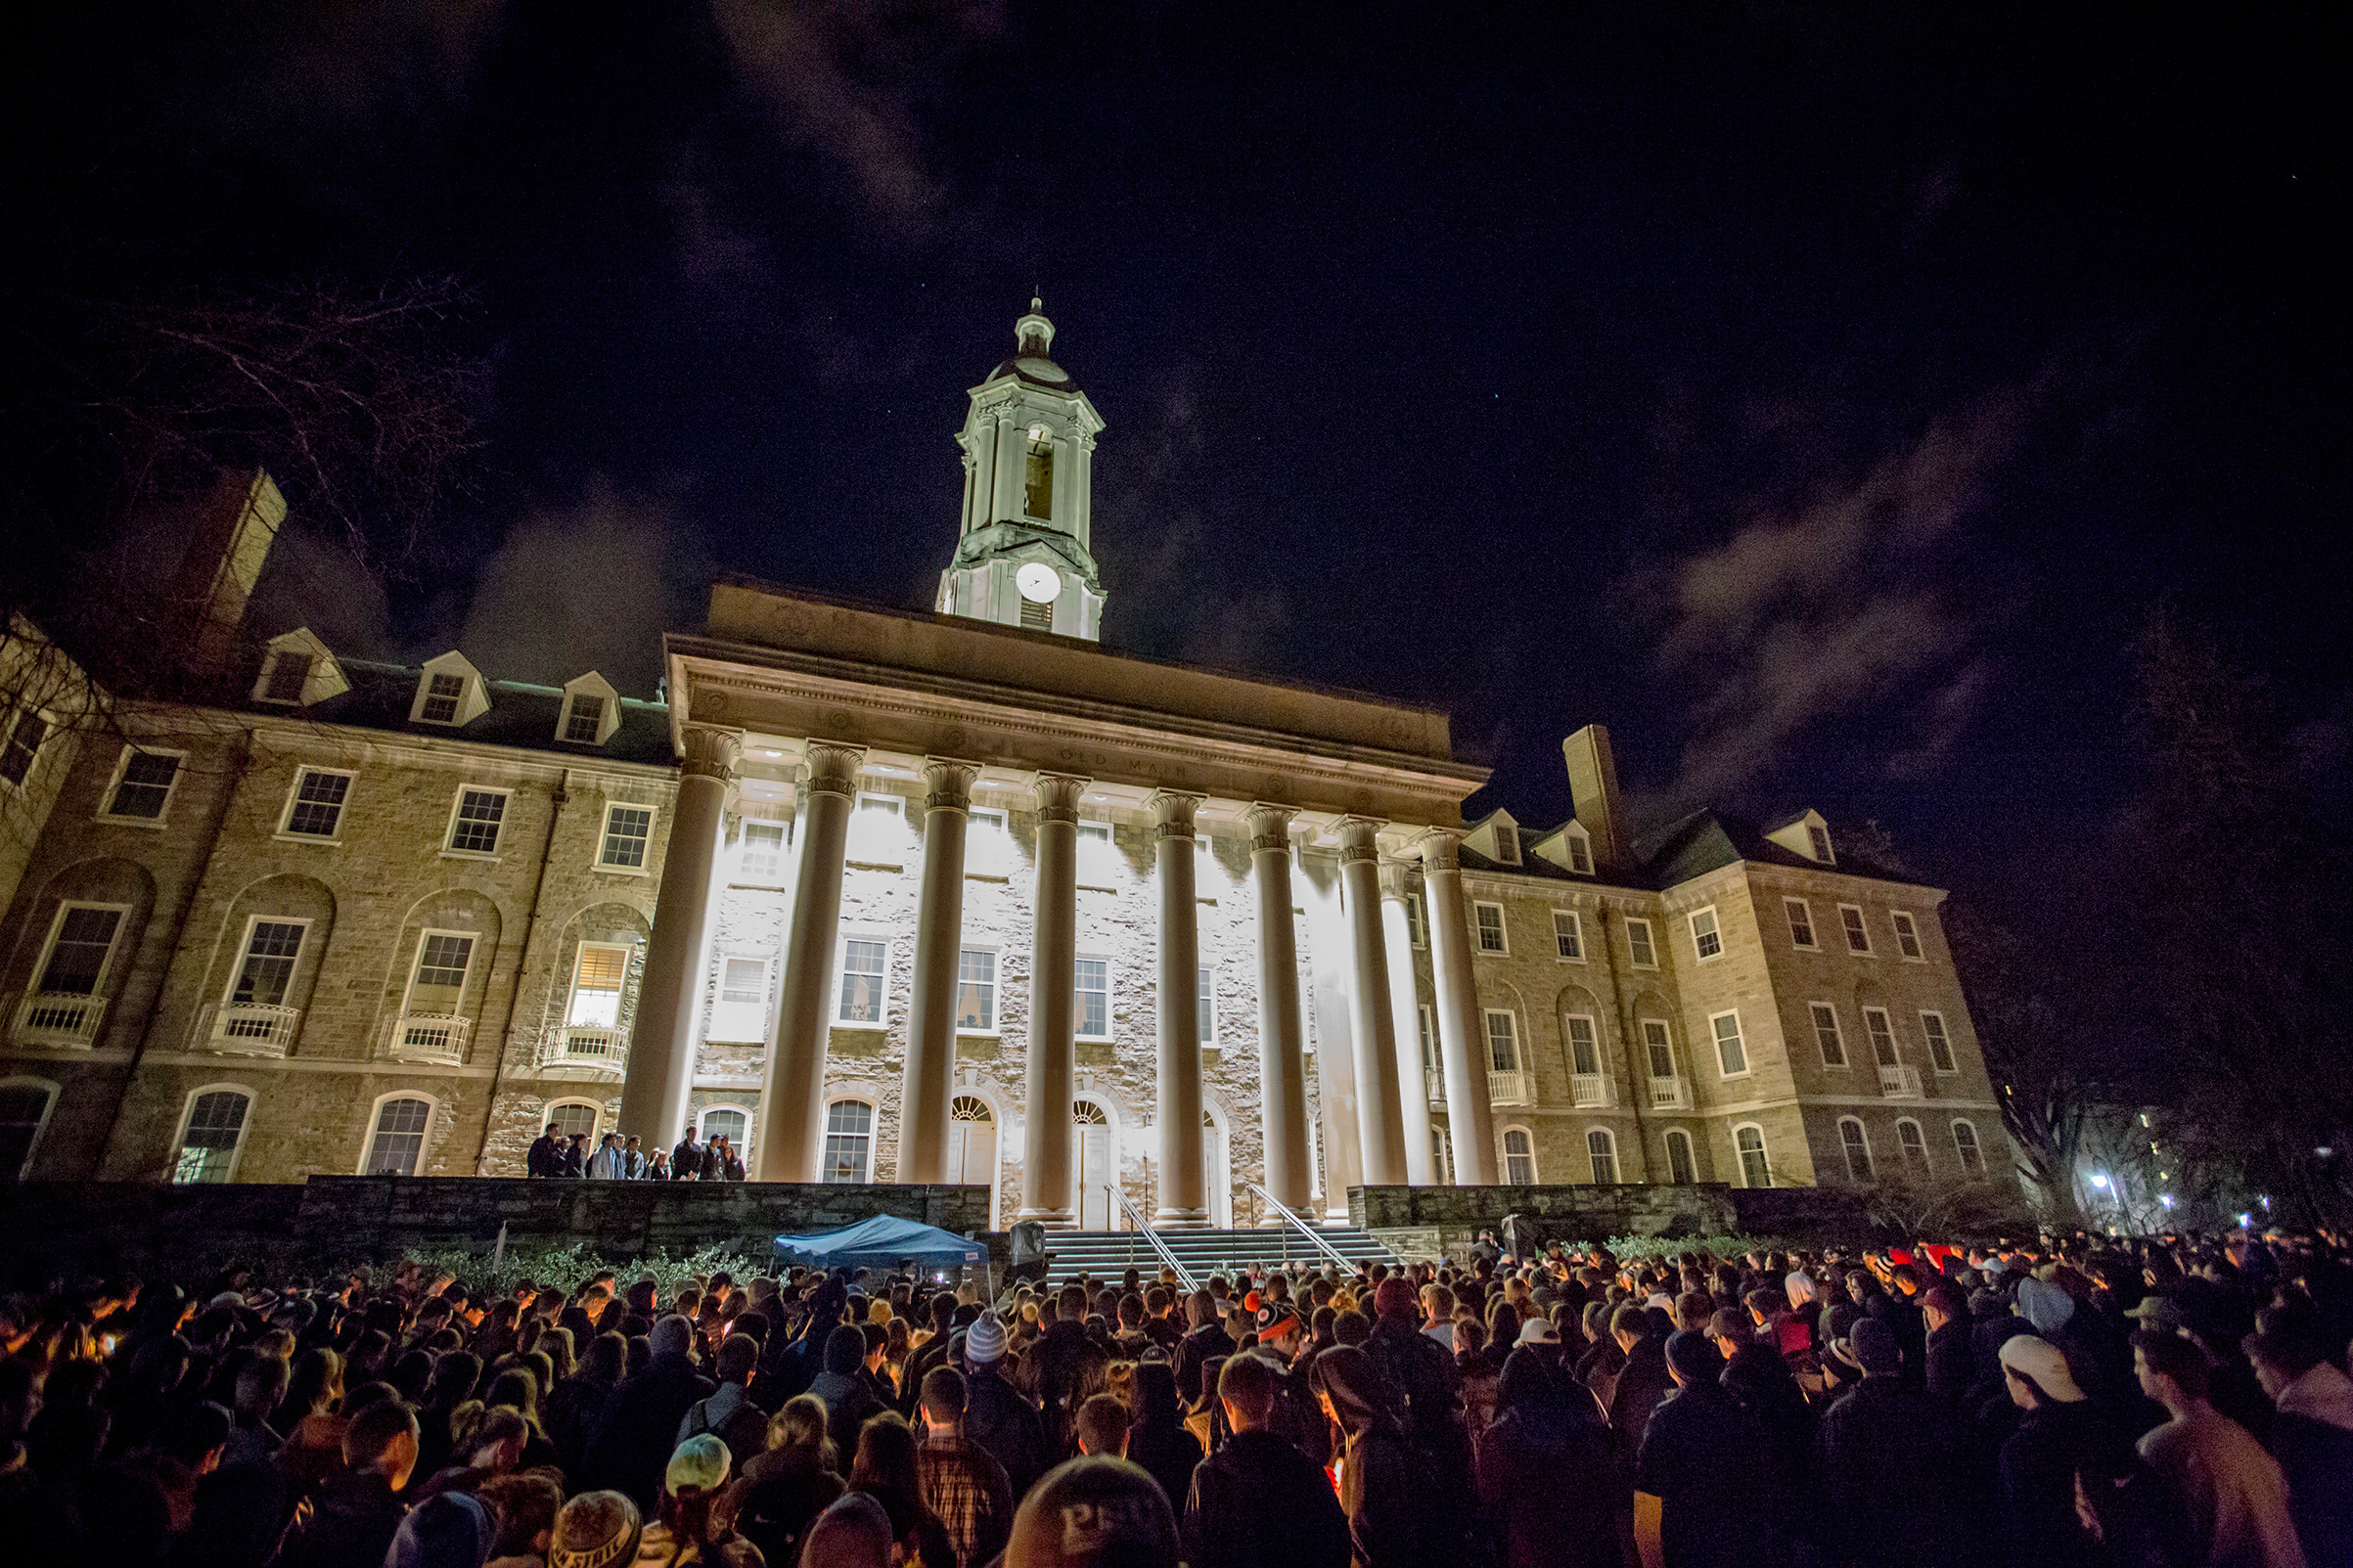 Students at Penn State gather for a candlelight vigil on Feb. 12, following Piazza's death